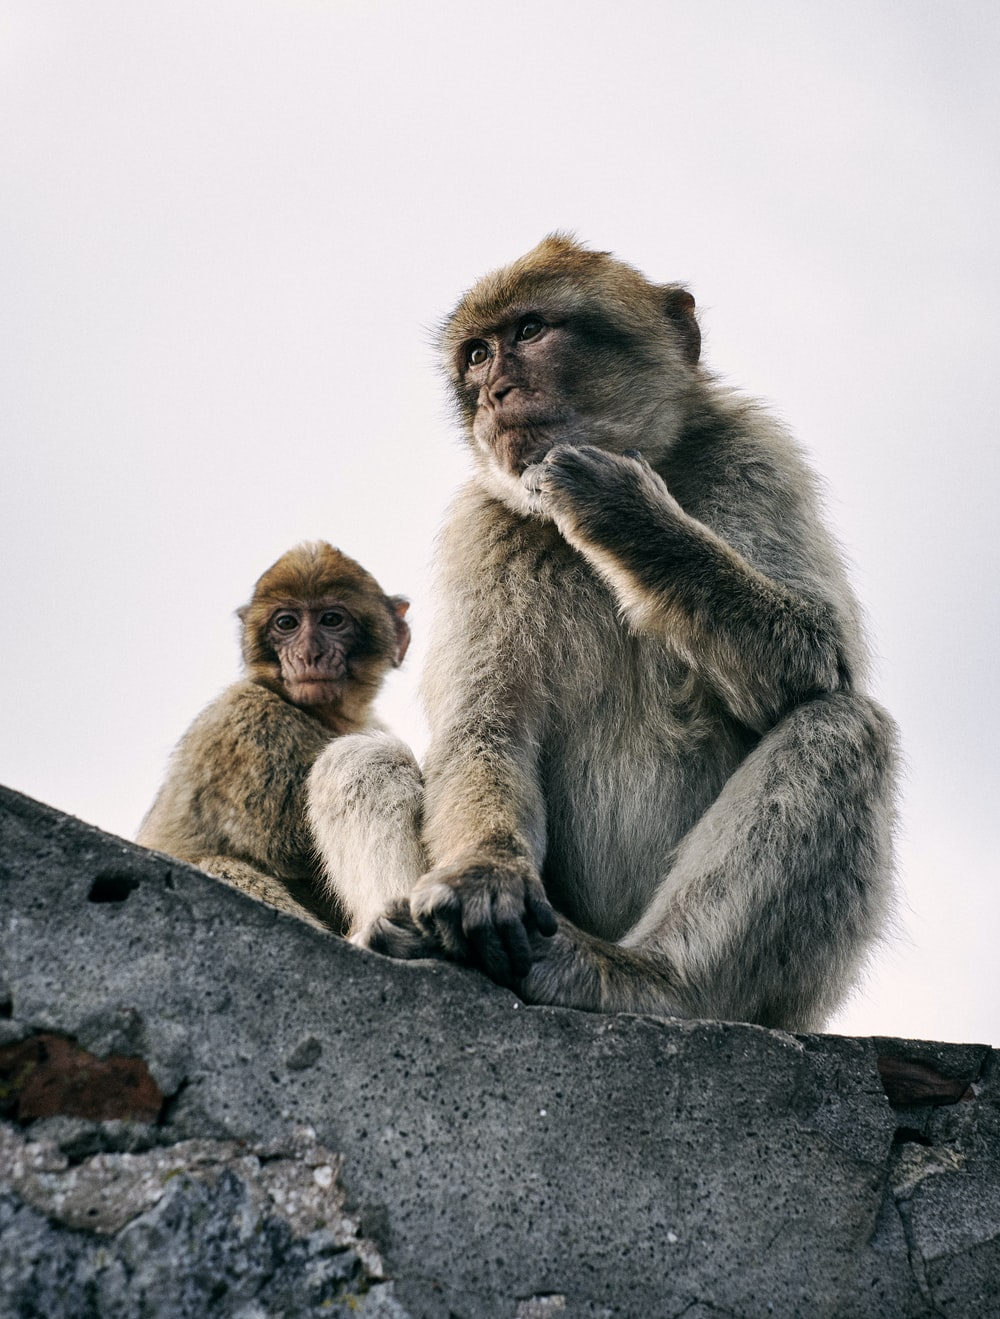 two monkeys on gray rock during daytime